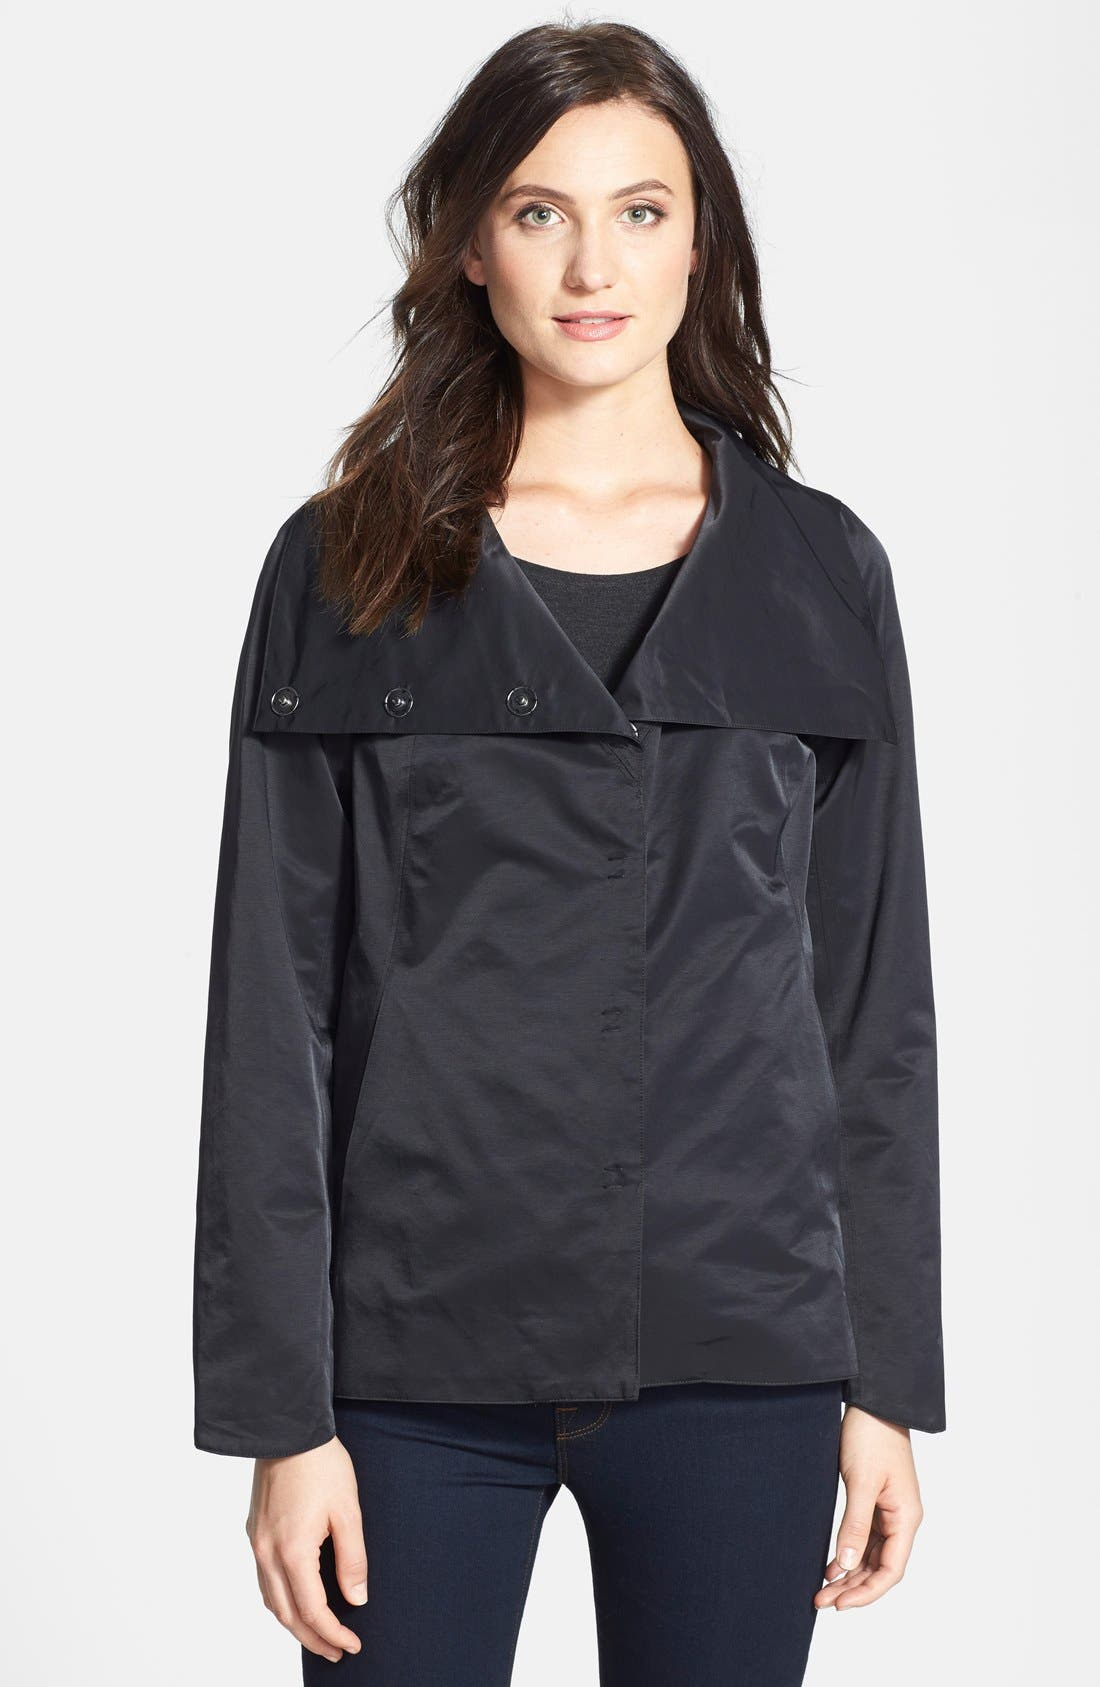 Alternate Image 1 Selected - Eileen Fisher Convertible Collar Asymmetrical Jacket